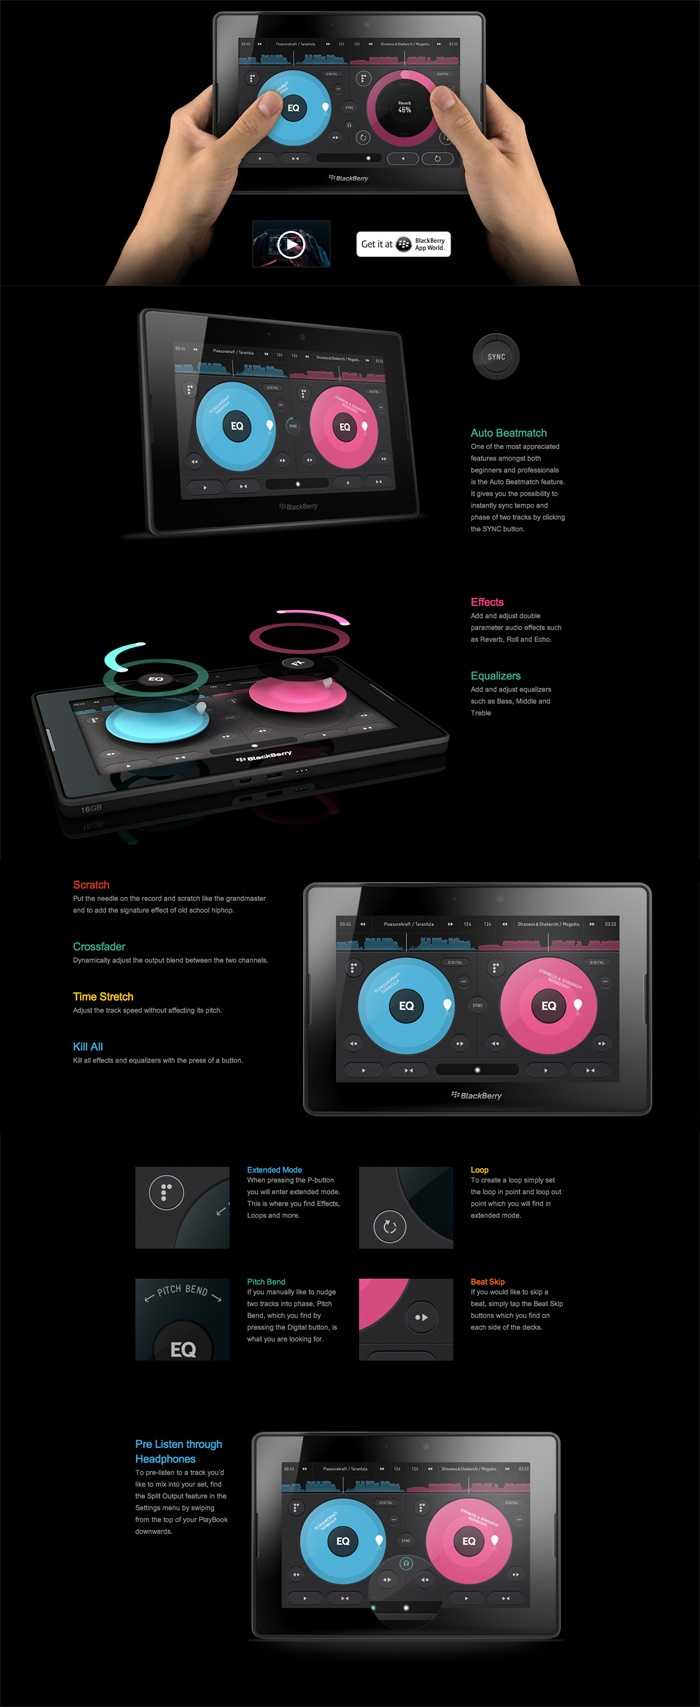 Pacemaker - Mix, scratch and loop on the Pacemaker® #app #ui #digital #mobile